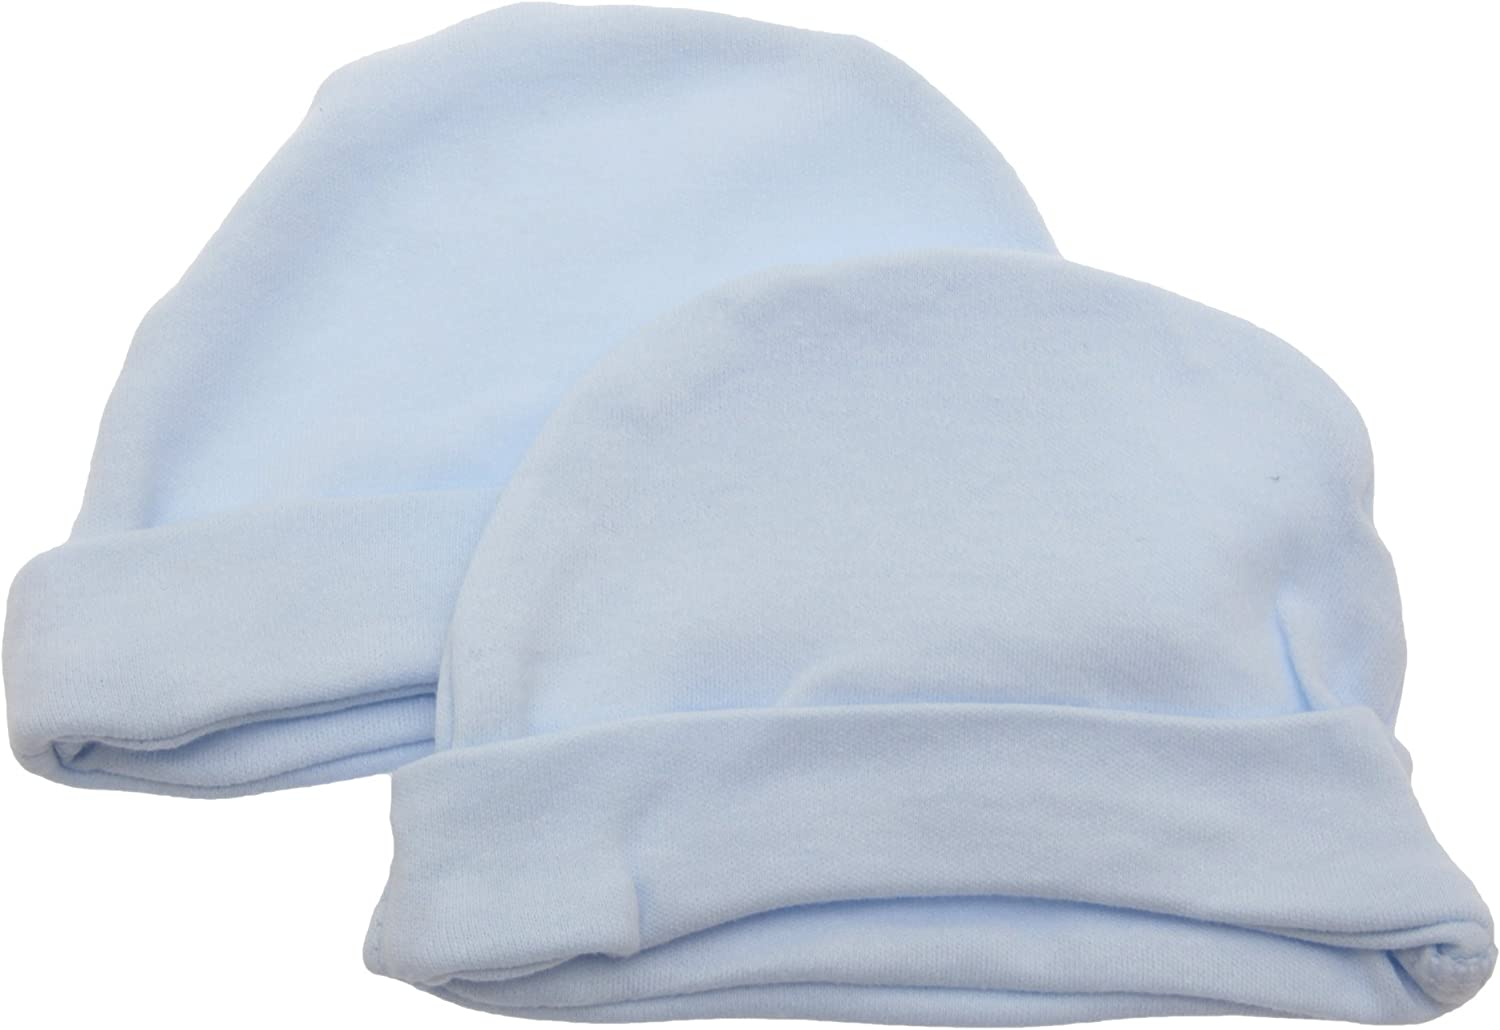 100/% Cotton Baby Hat in Tiny Newborn or 0-3 Months in White Pink or Blue